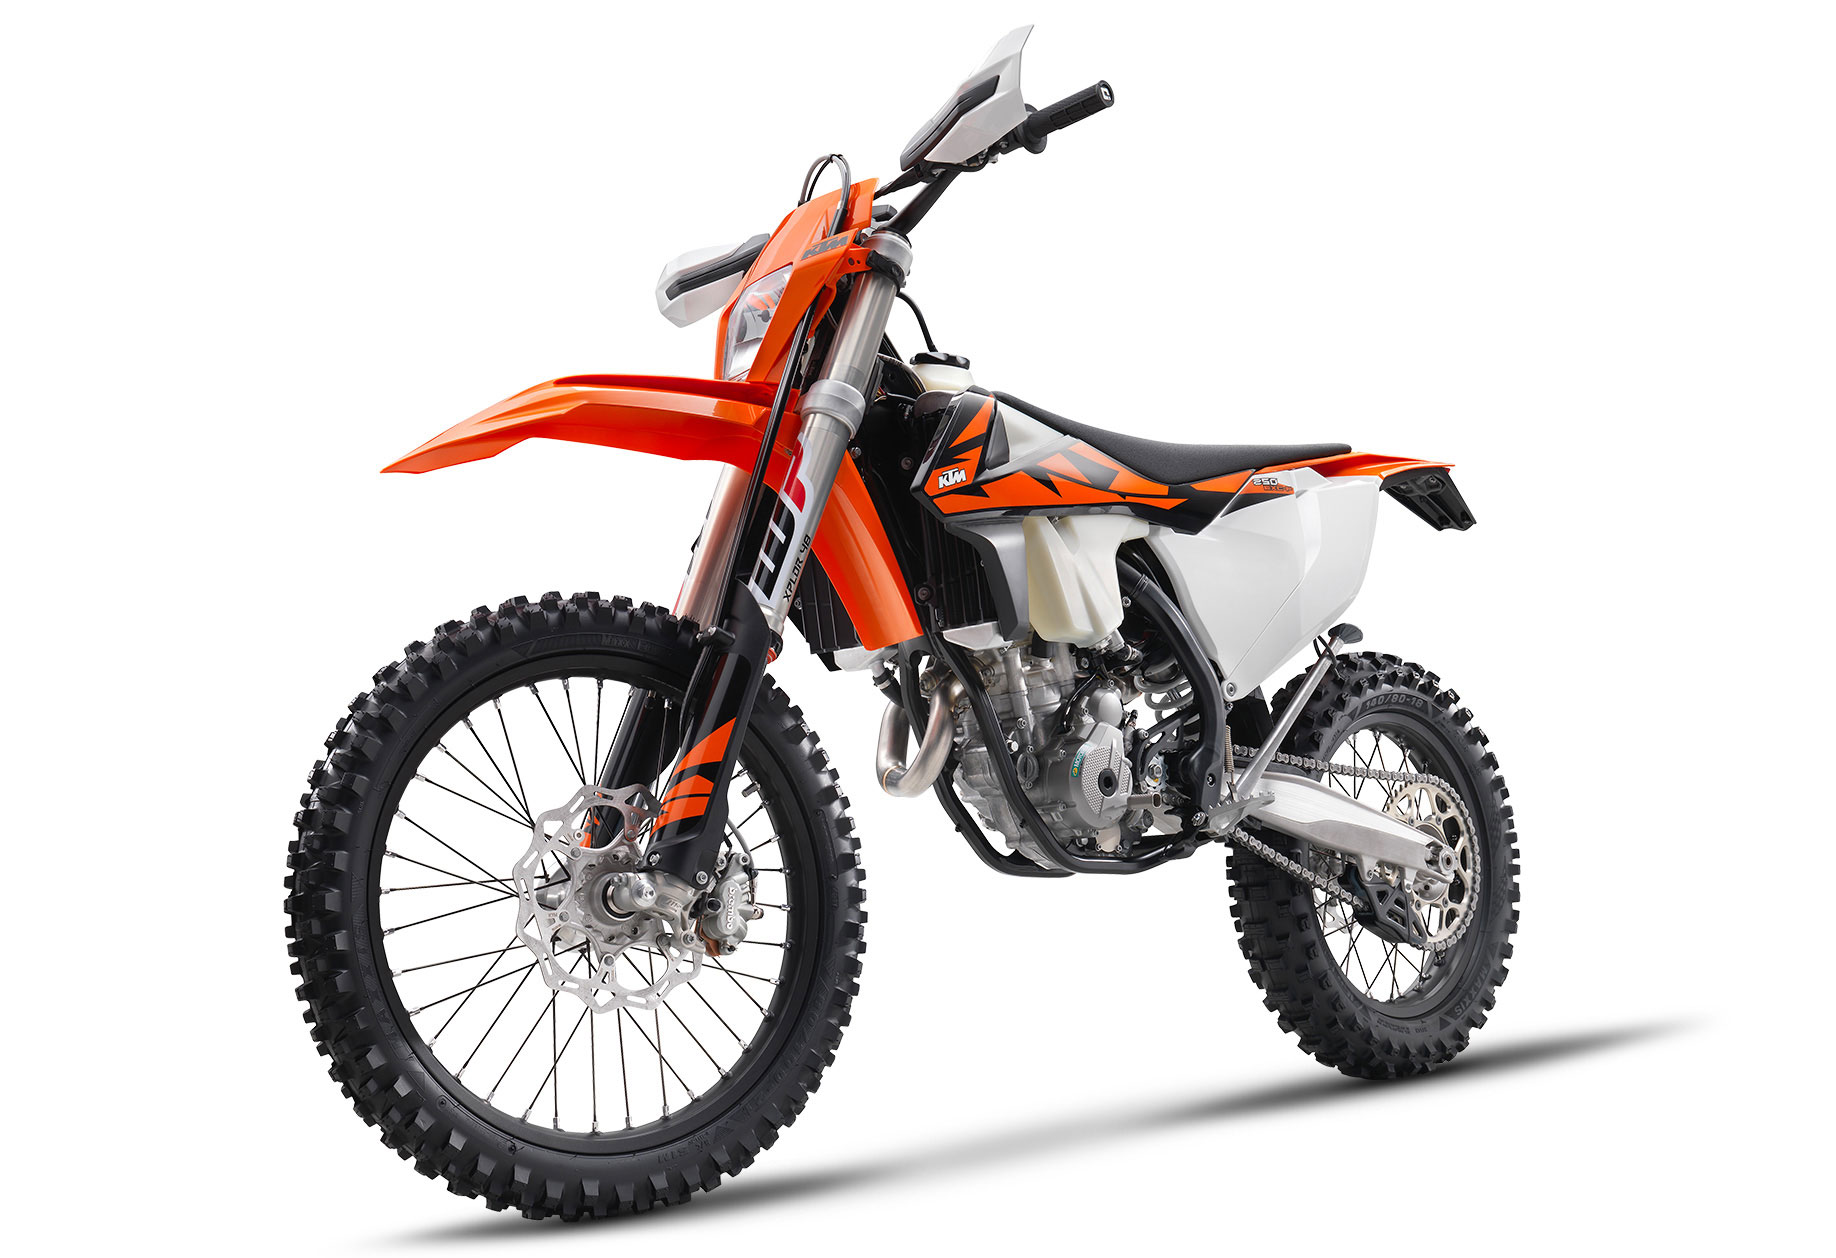 2018 ktm 250 exc f review totalmotorcycle. Black Bedroom Furniture Sets. Home Design Ideas